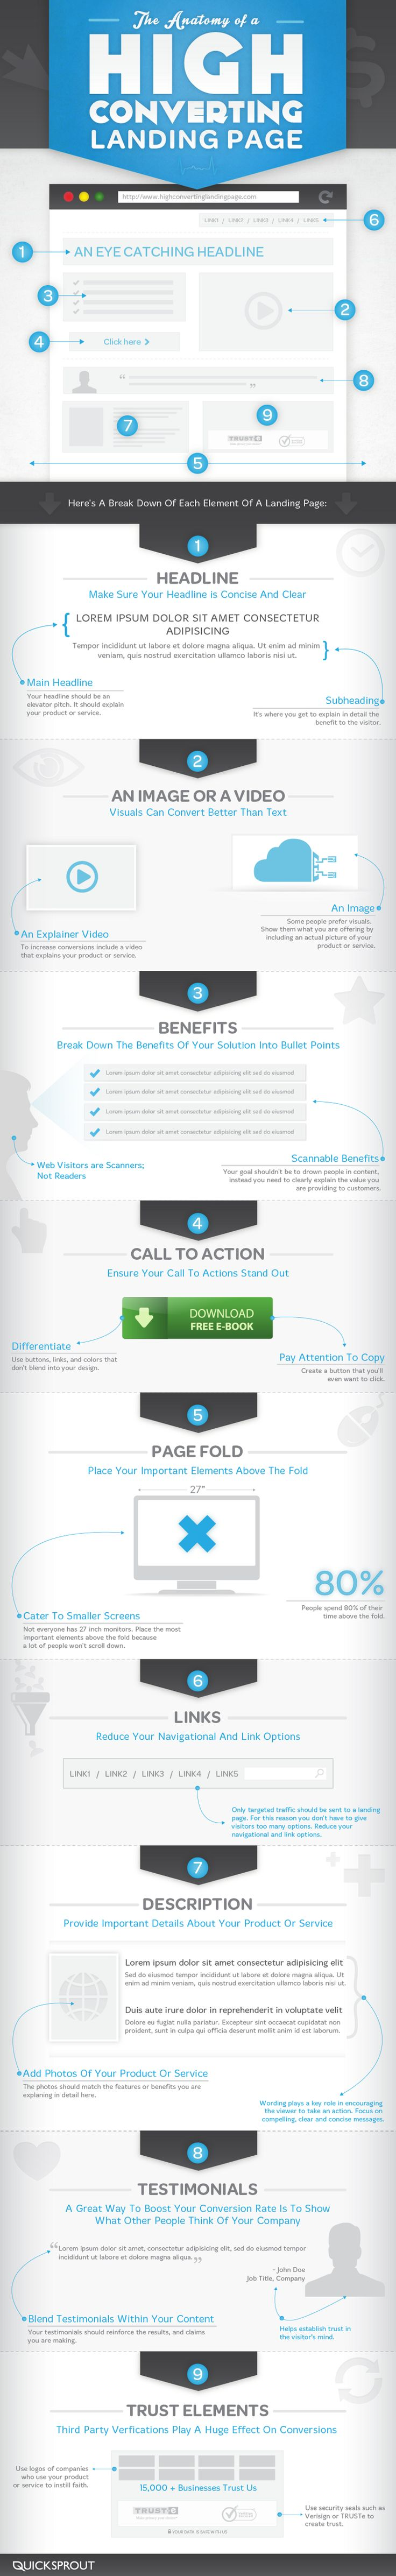 Great tips for optimizing your landing page and increasing your leads.